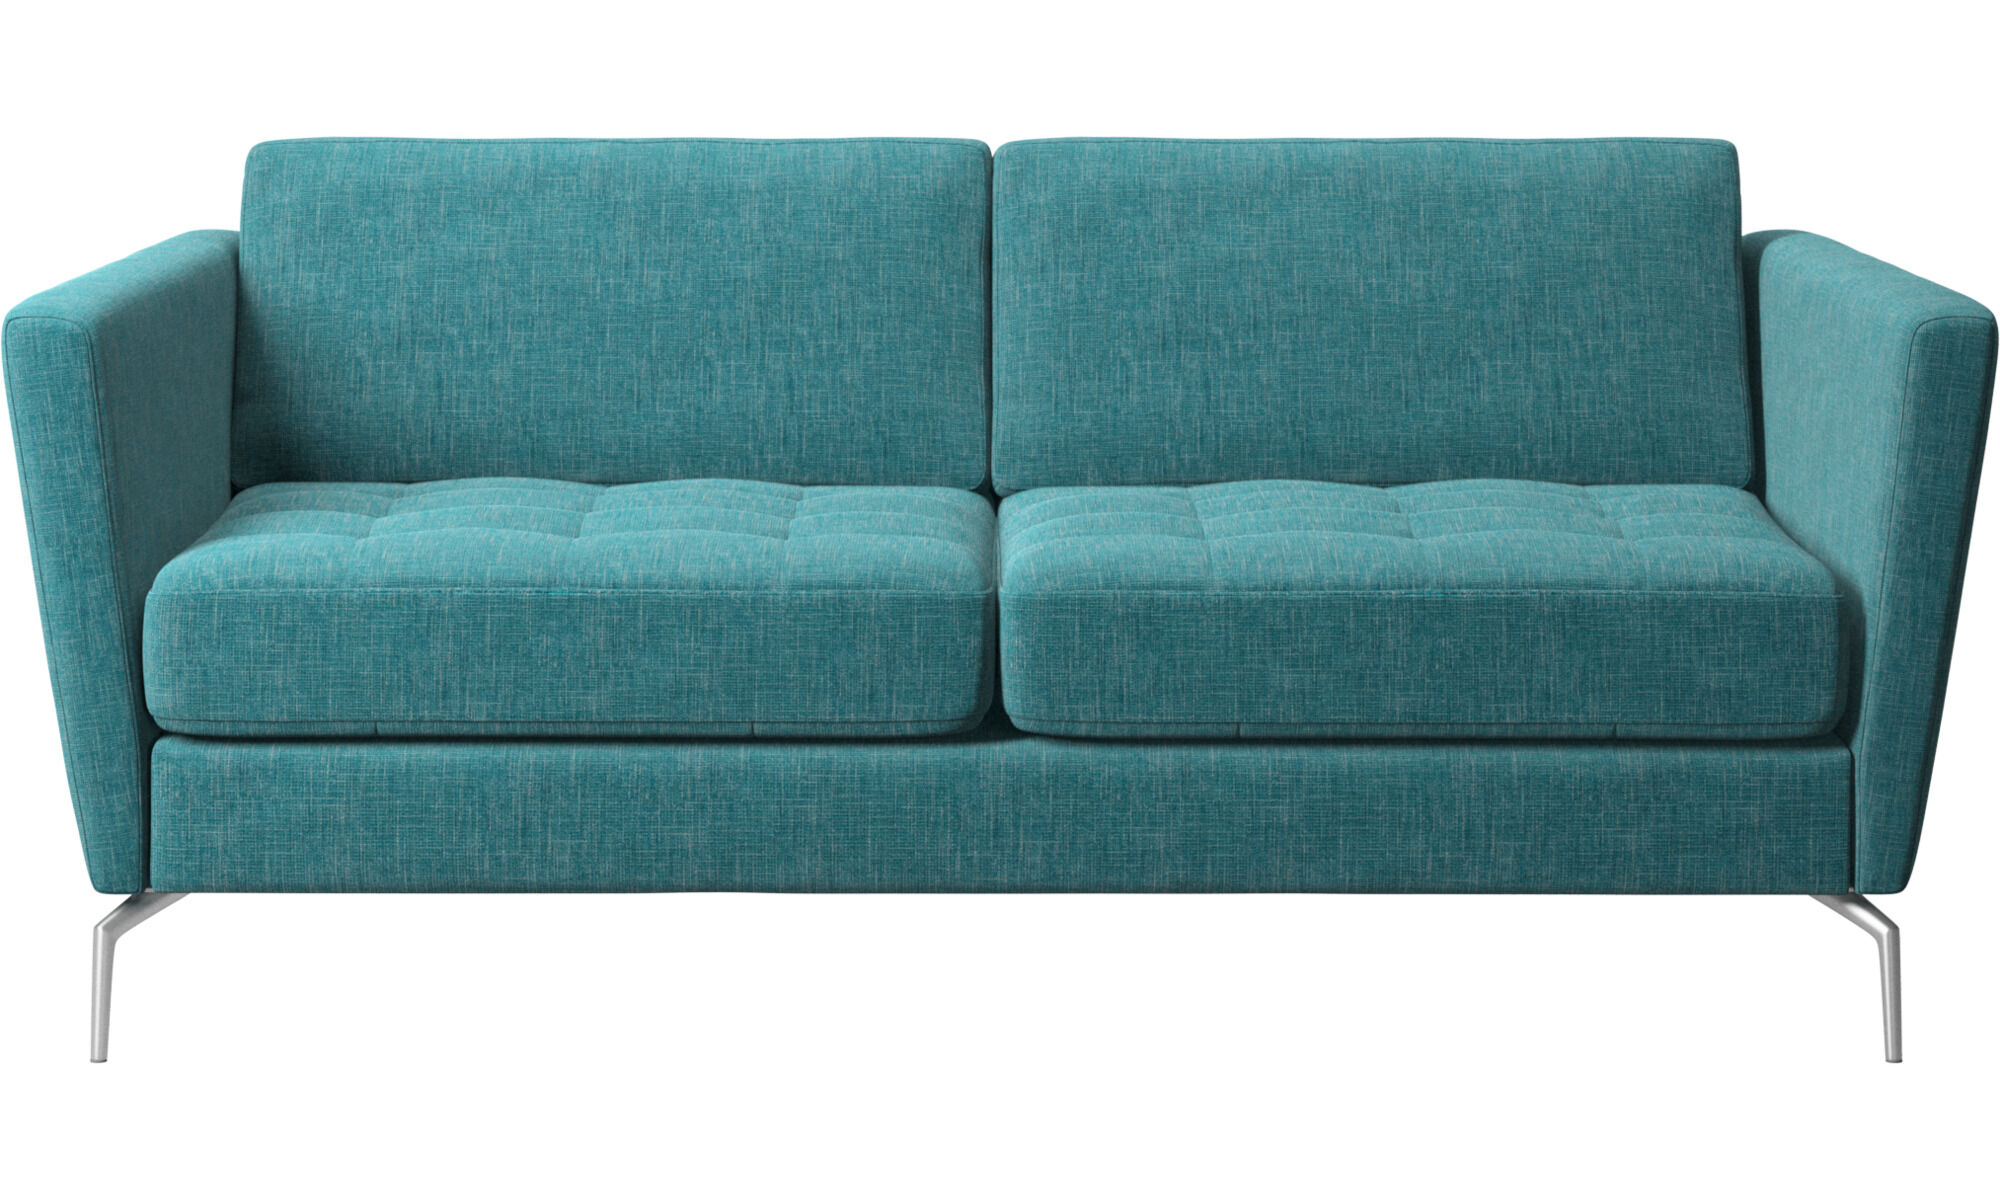 Sofa S Sofas From The Boconcept Collection